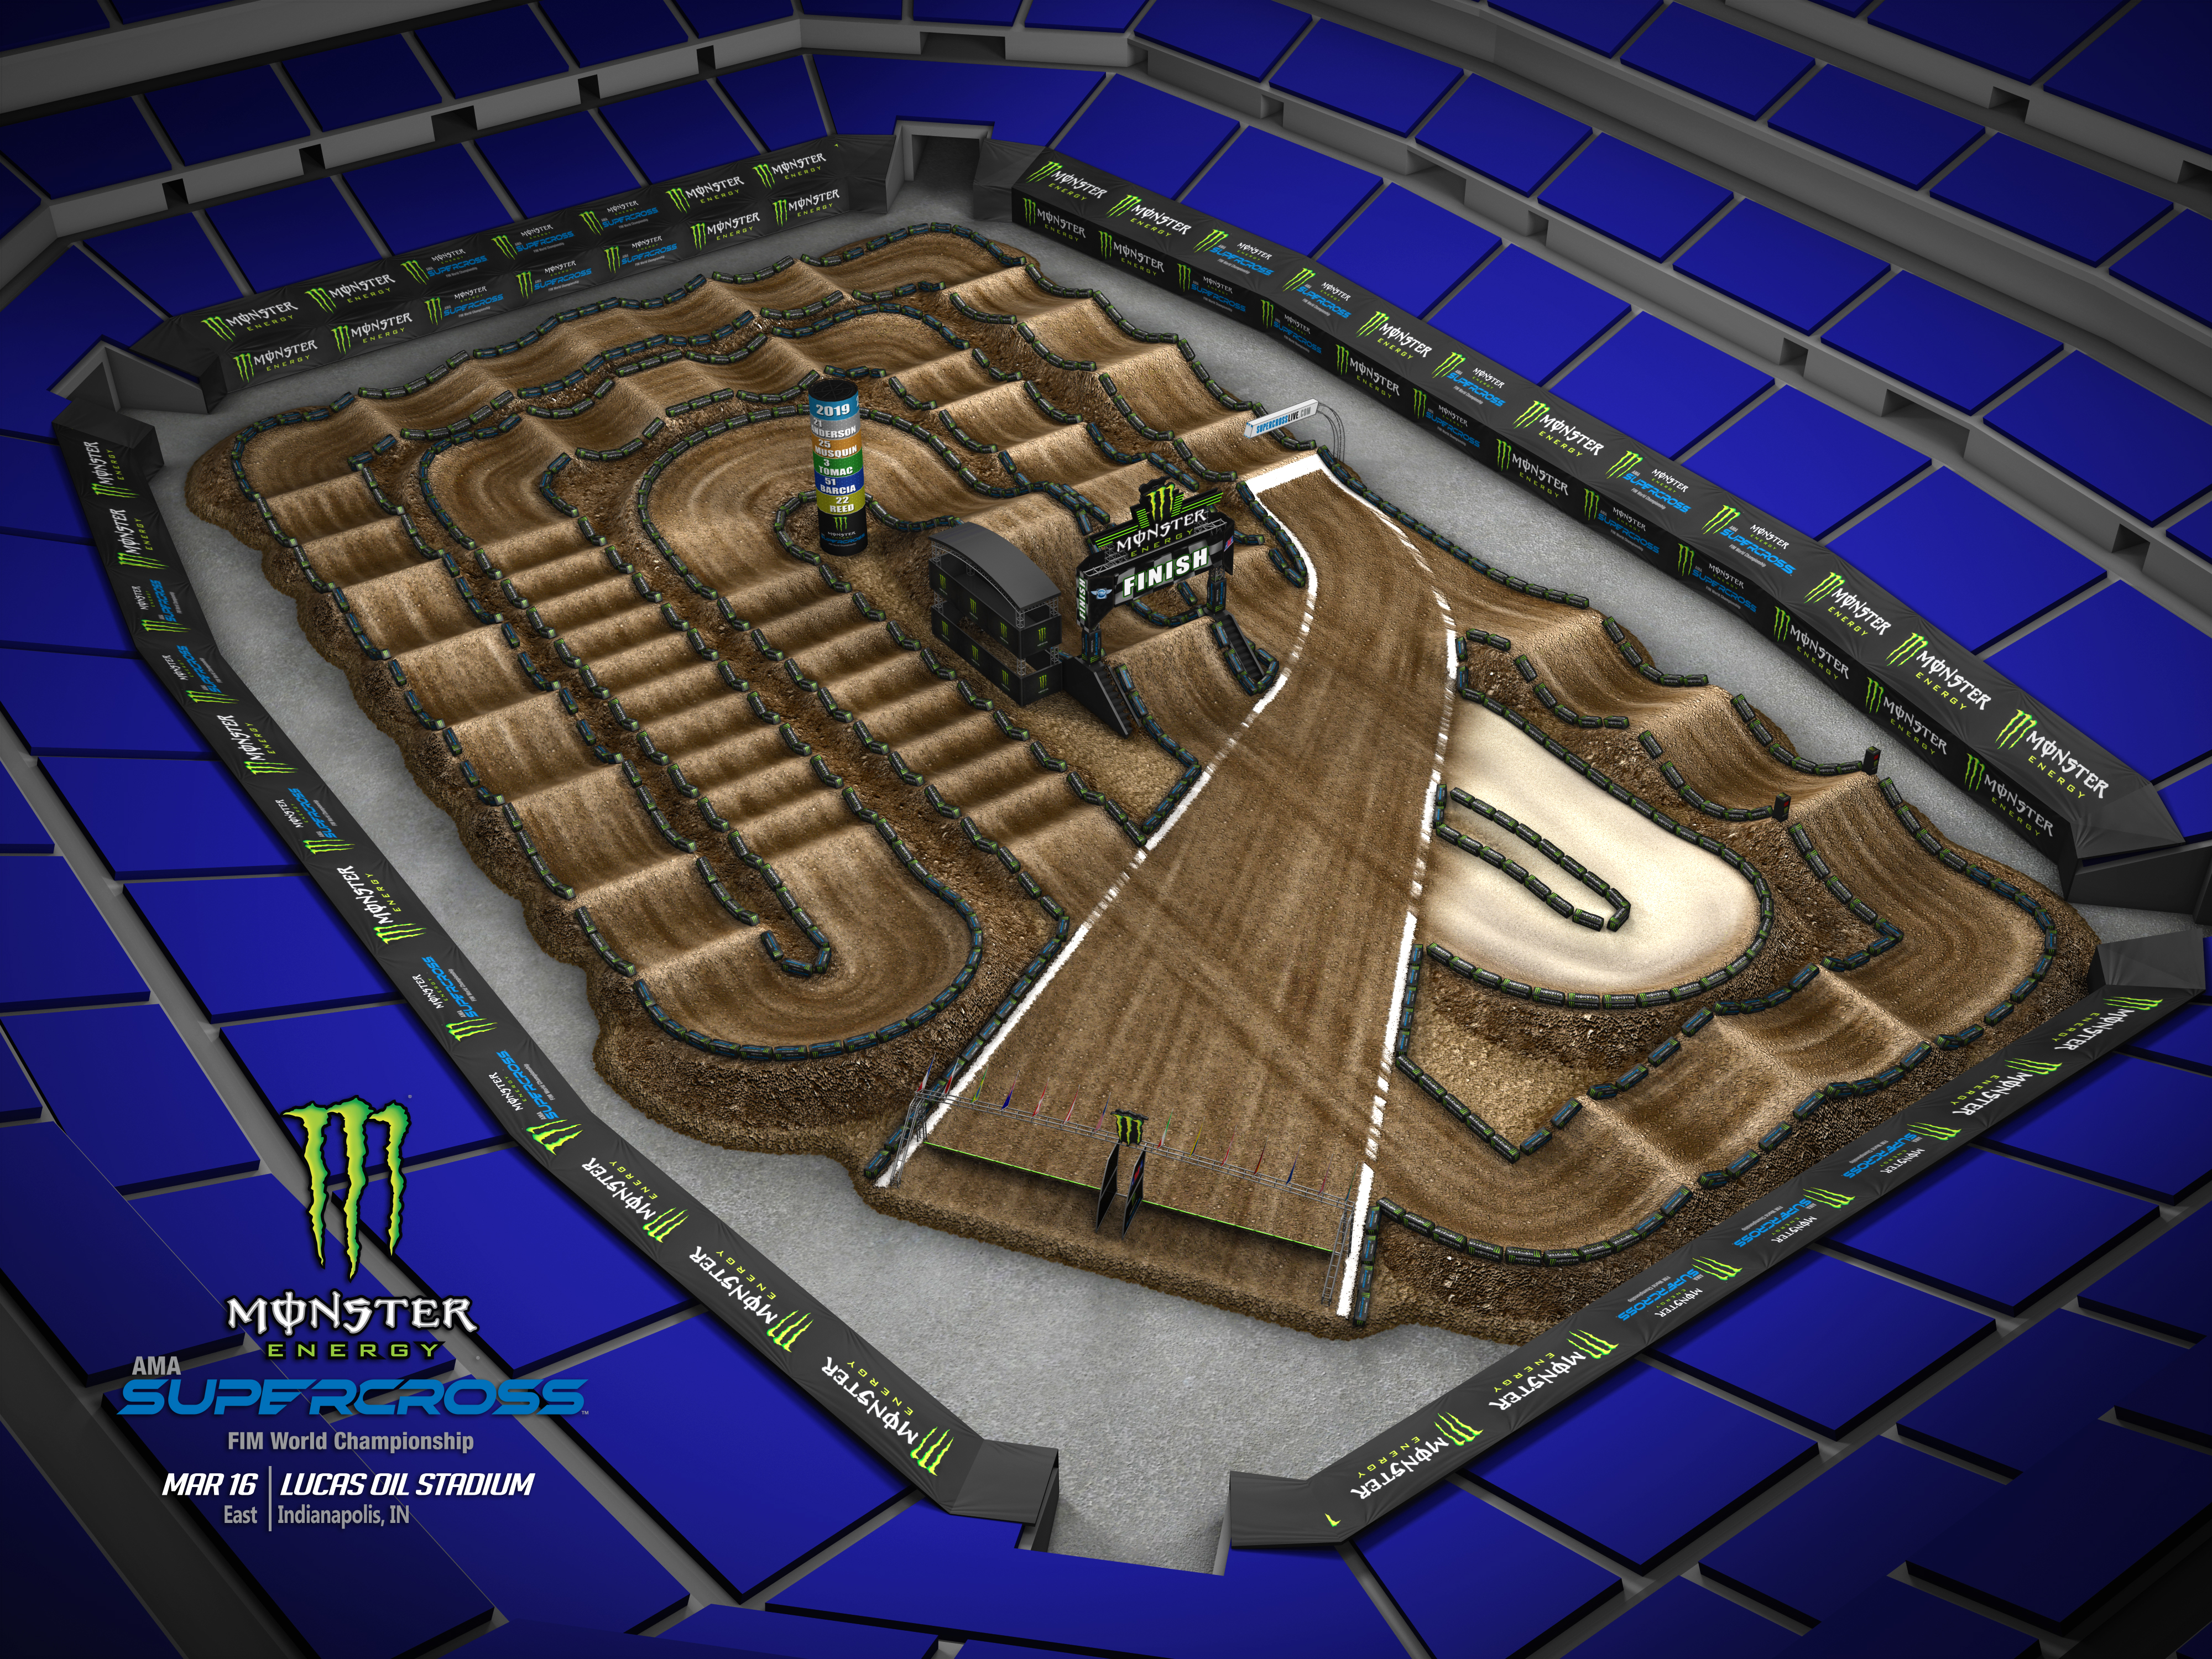 2019 Monster Energy Supercross Indianapolis Track Map